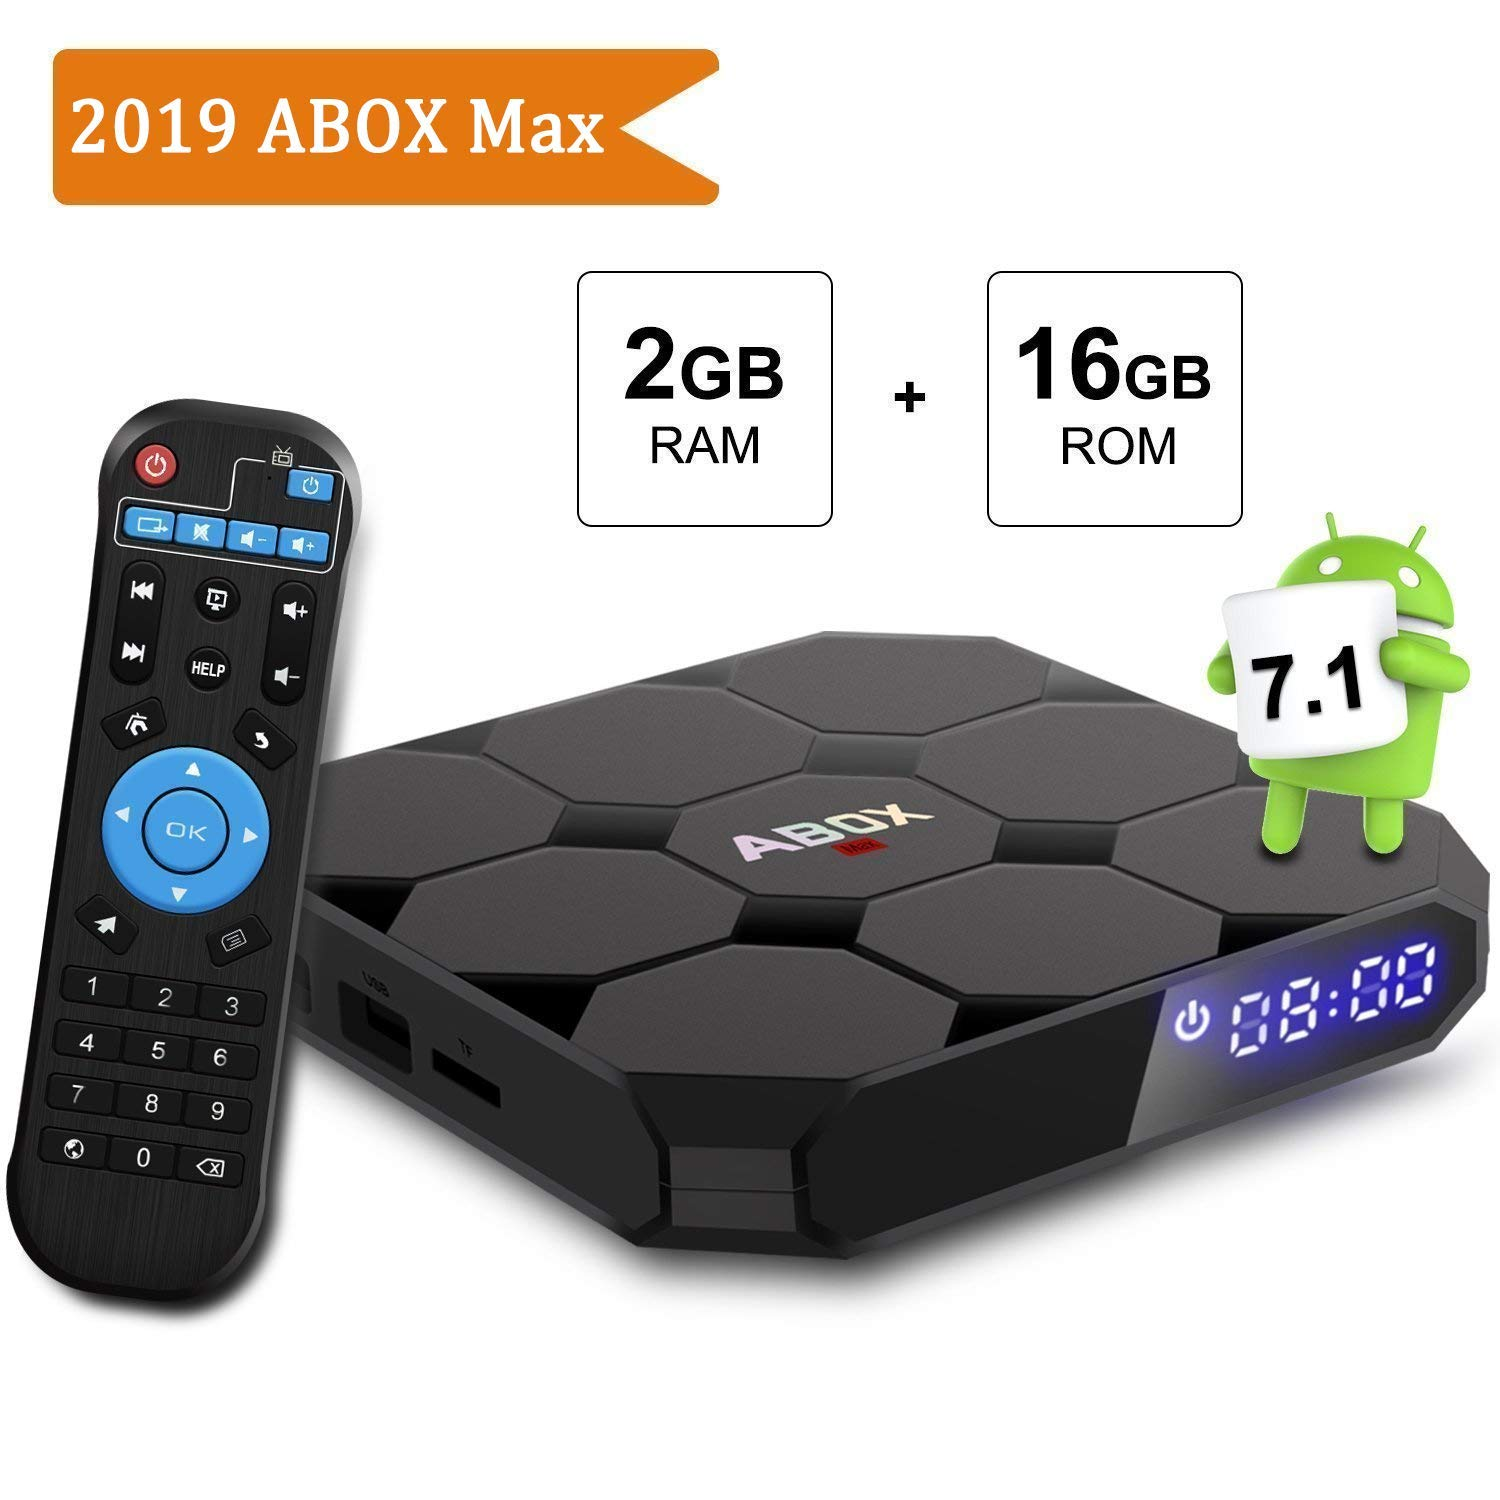 Android TV Box, ABOX A1 MAX Android 7.1 Smart TV Box de 2GB RAM+16GB ROM con BT 4.0 Soporta WiFi 2.4GHz /Full HD/ 4K H.265 Android Box: Amazon.es: Electrónica